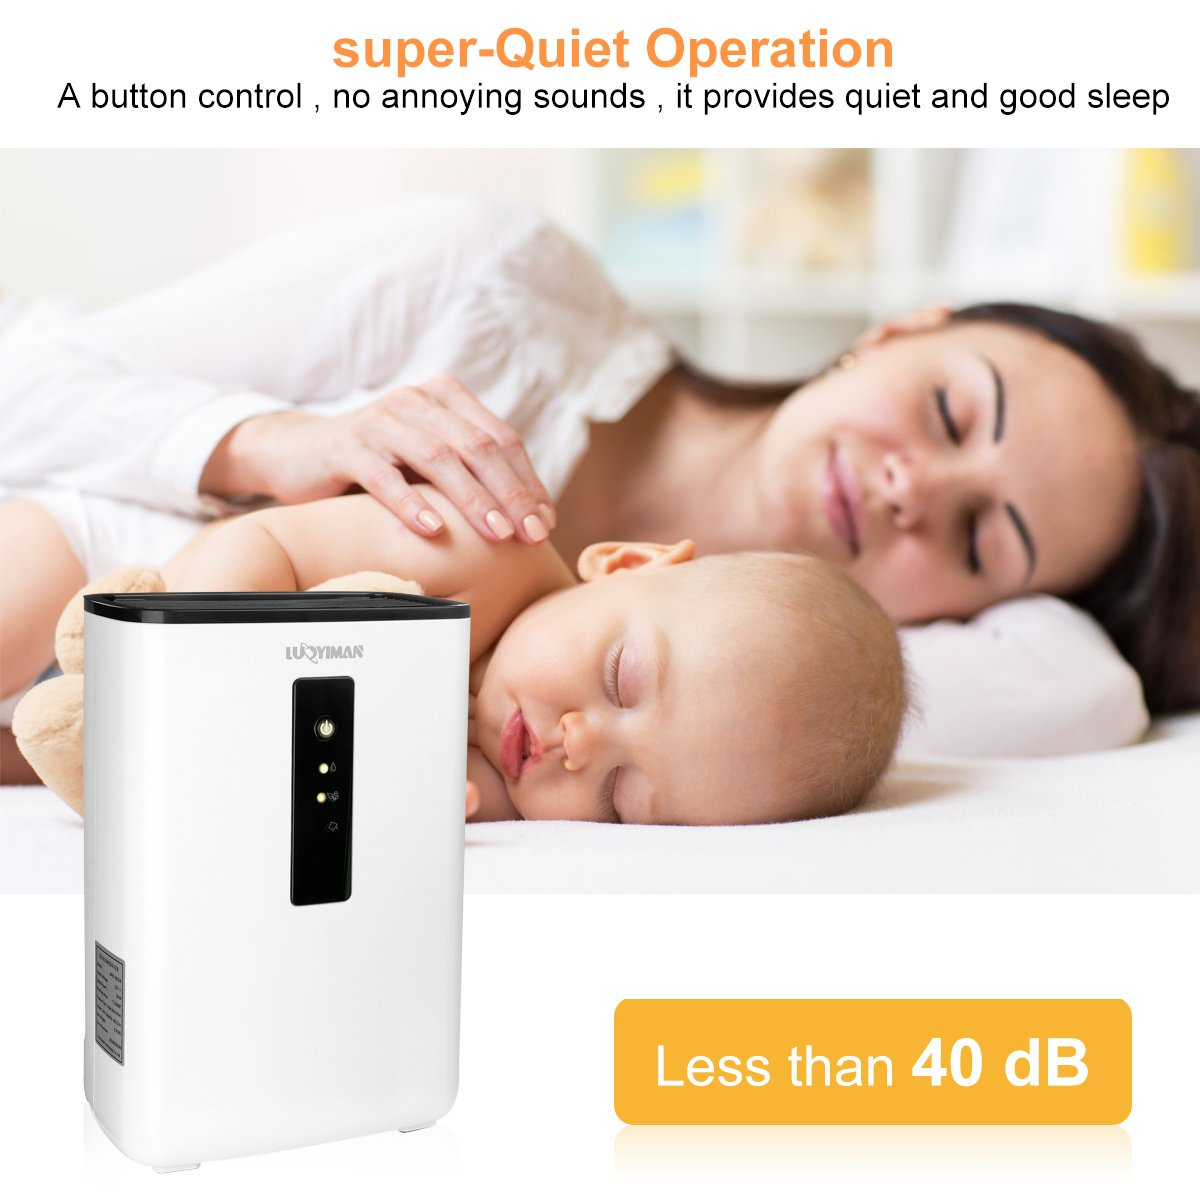 LUOYIMAN Dehumidifier Electric Home Dehumidifier Quiet Operation with UV Sterilization (2.5 Liter) by LUOYIMAN (Image #7)